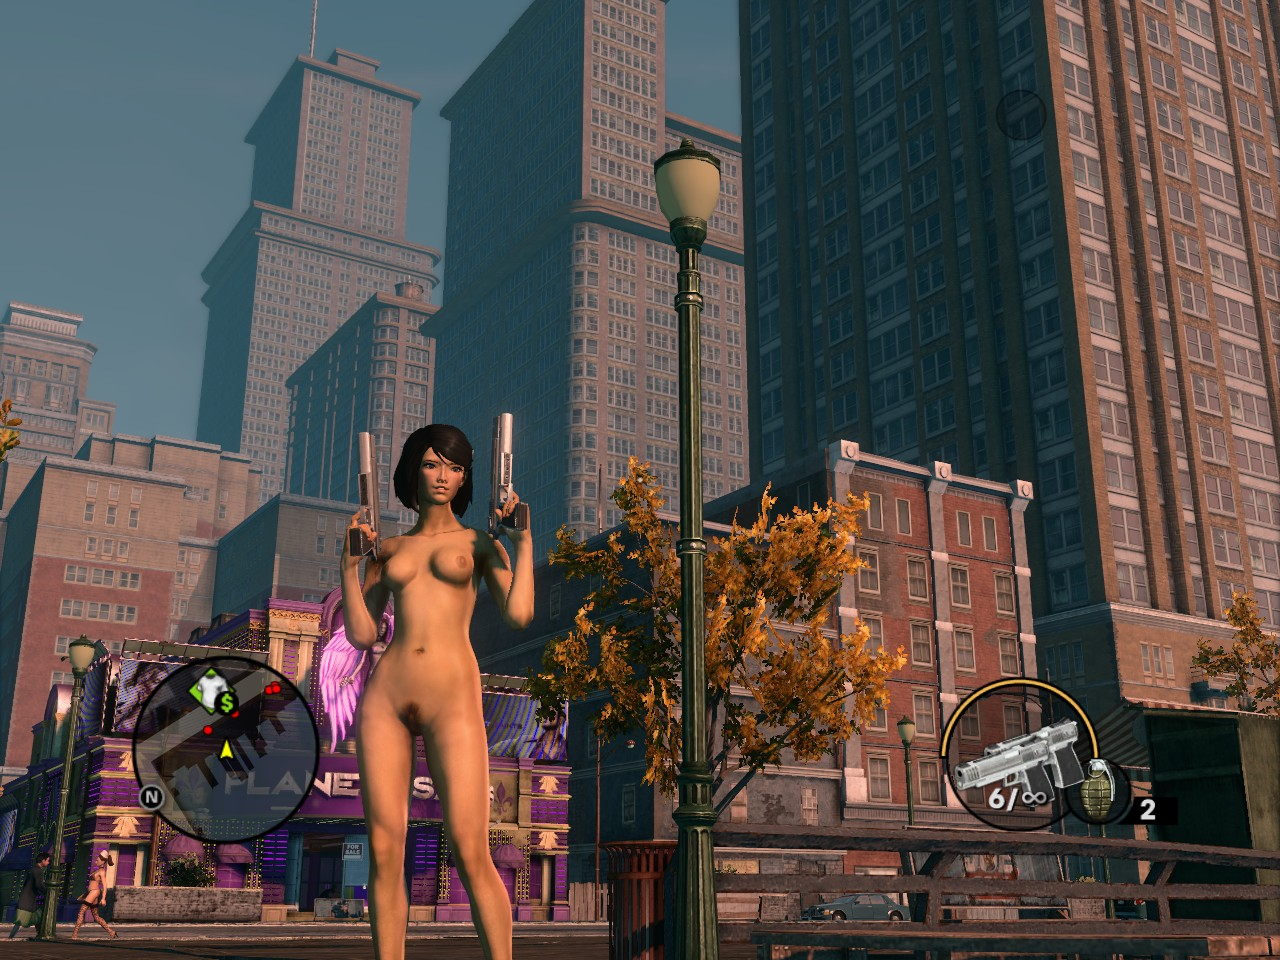 Saints row 2 sex mod nackt photos